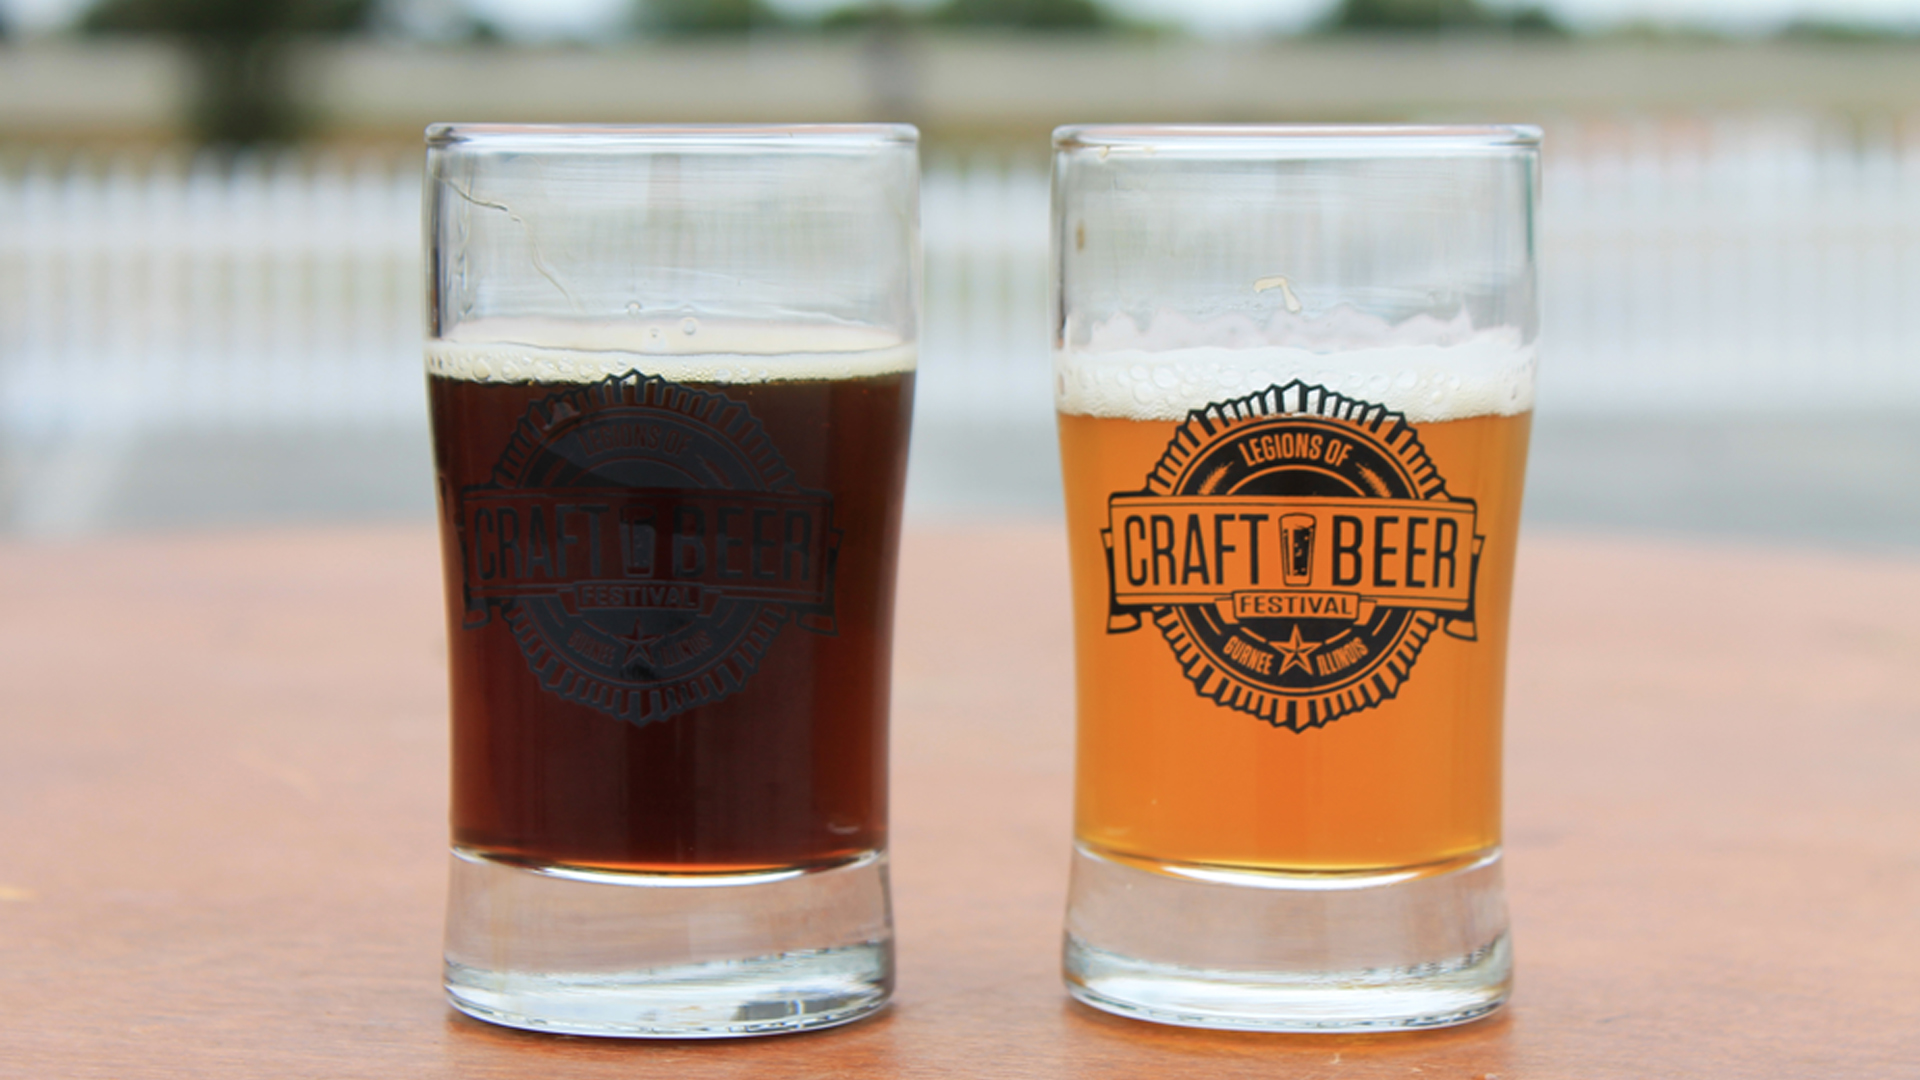 Annual Legions of Craft Beer Fest